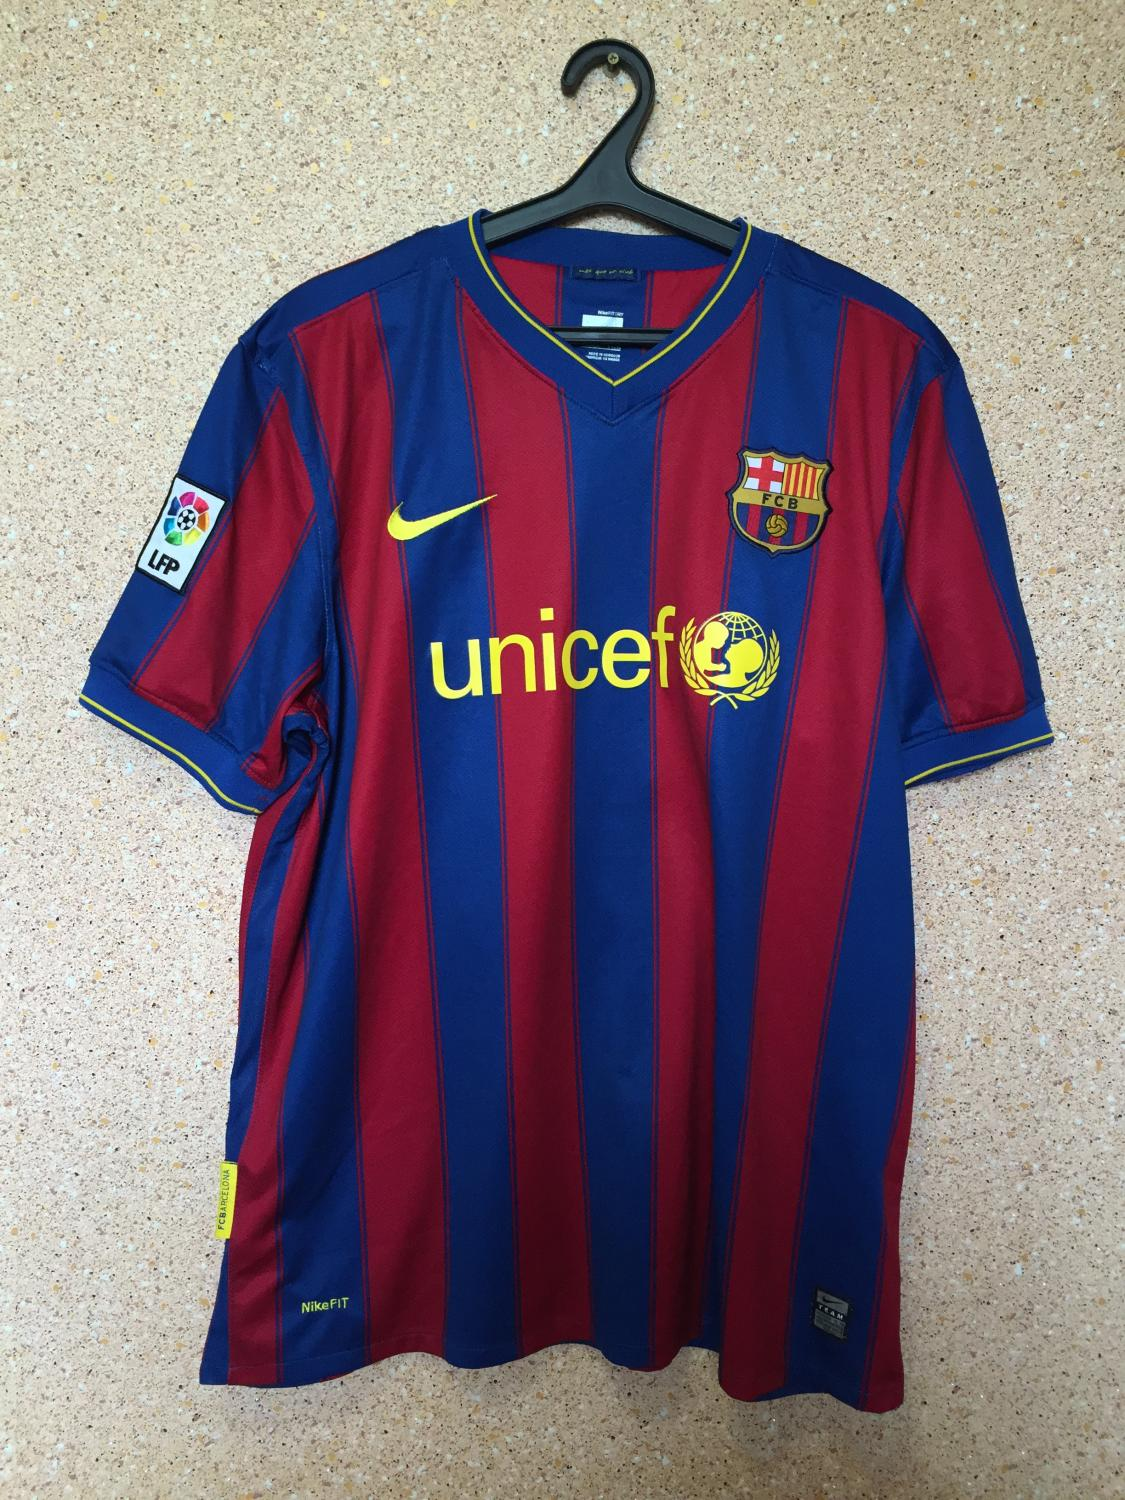 ecf40618cc4 Barcelona Home football shirt 2009 - 2010. Sponsored by Unicef